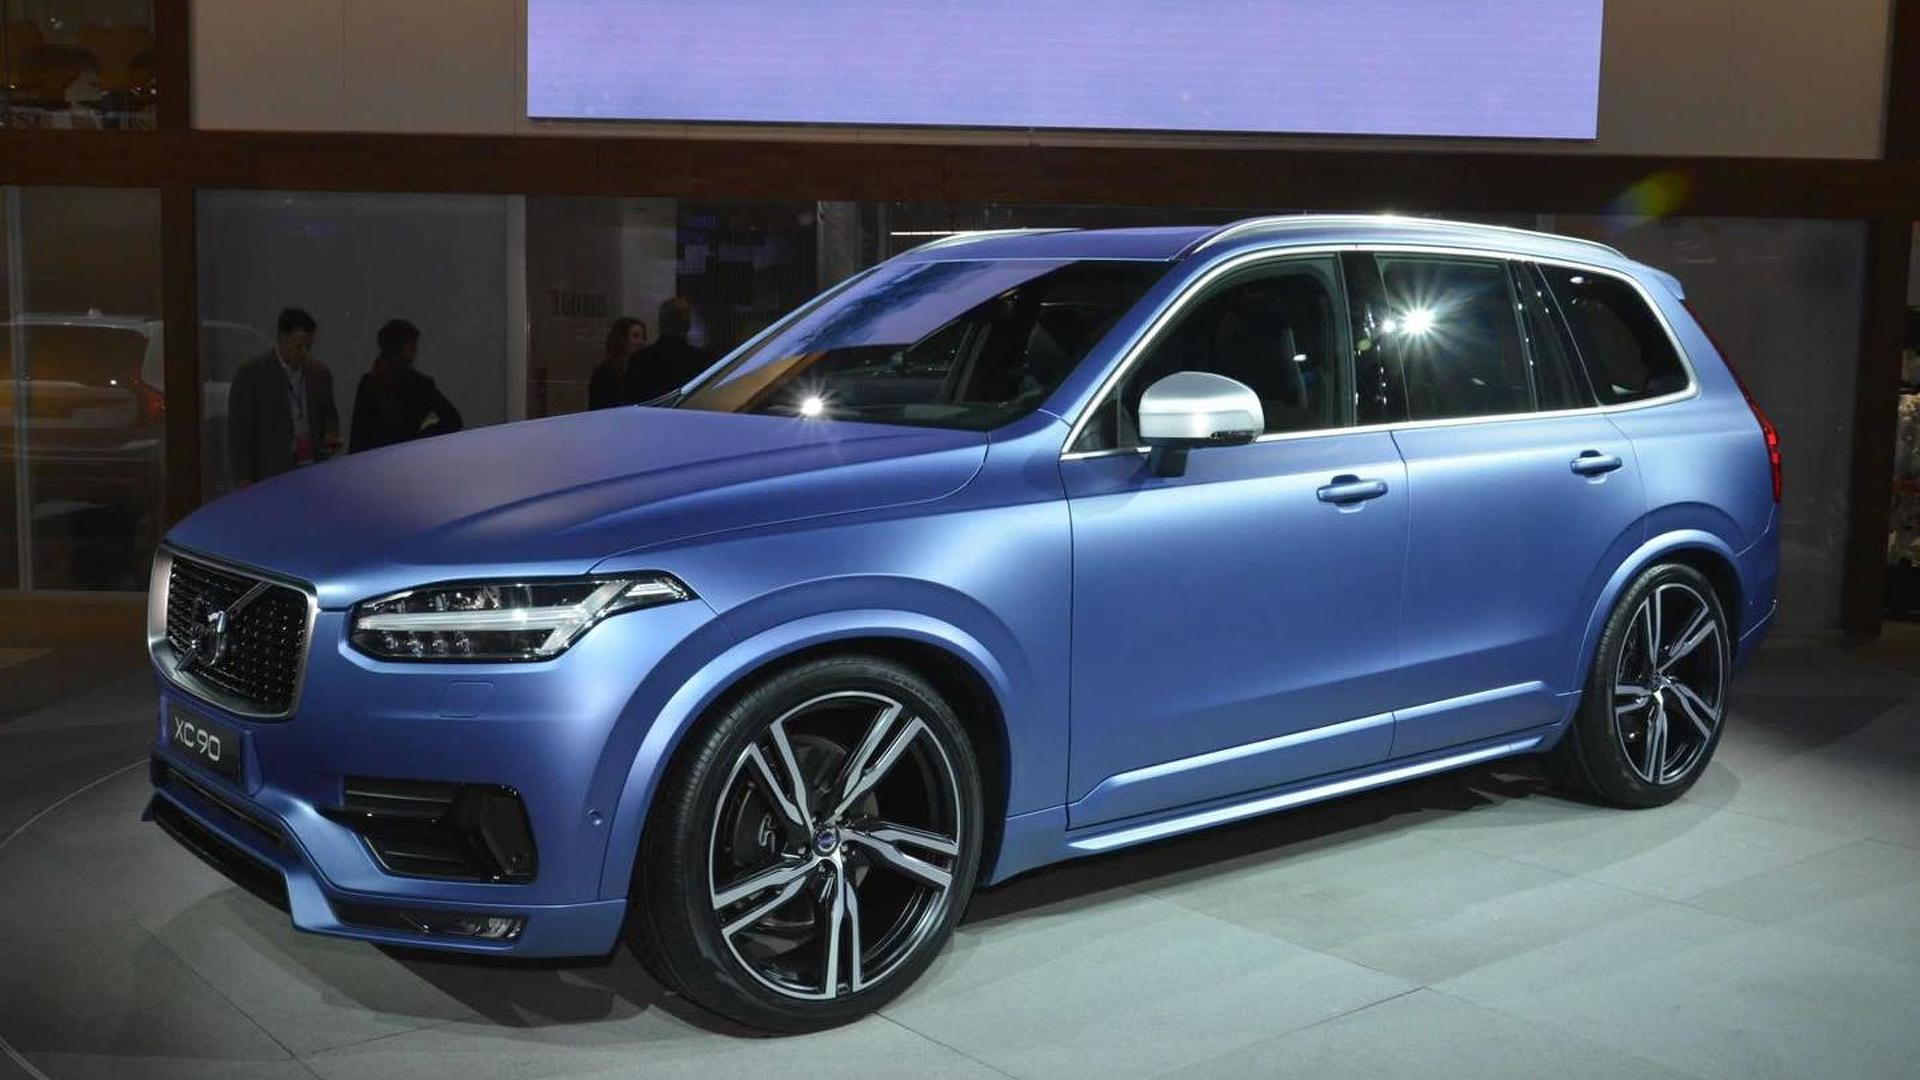 Volvo Xc90 R Design >> Volvo Xc90 R Design Shows Its Sportier Side At Naias